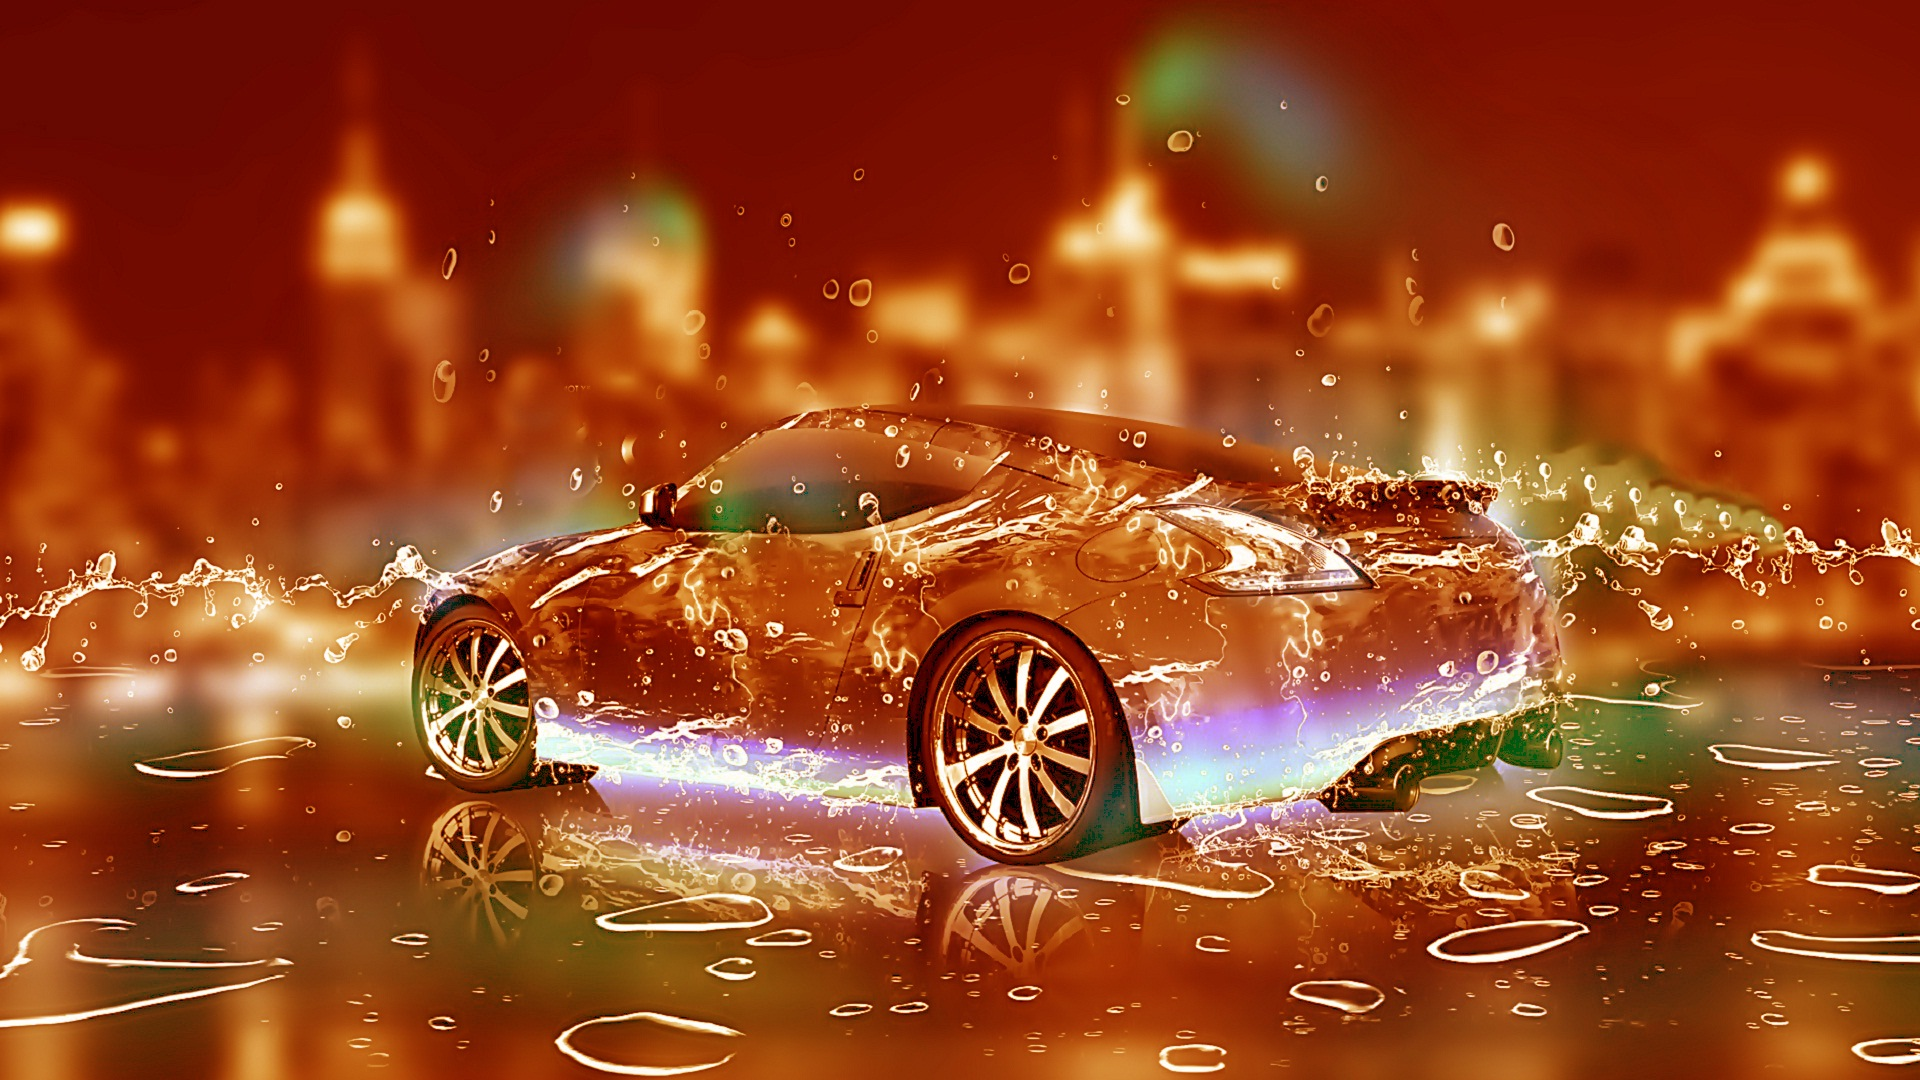 Car Wallpaper 3d Download Automotive Wallpapers